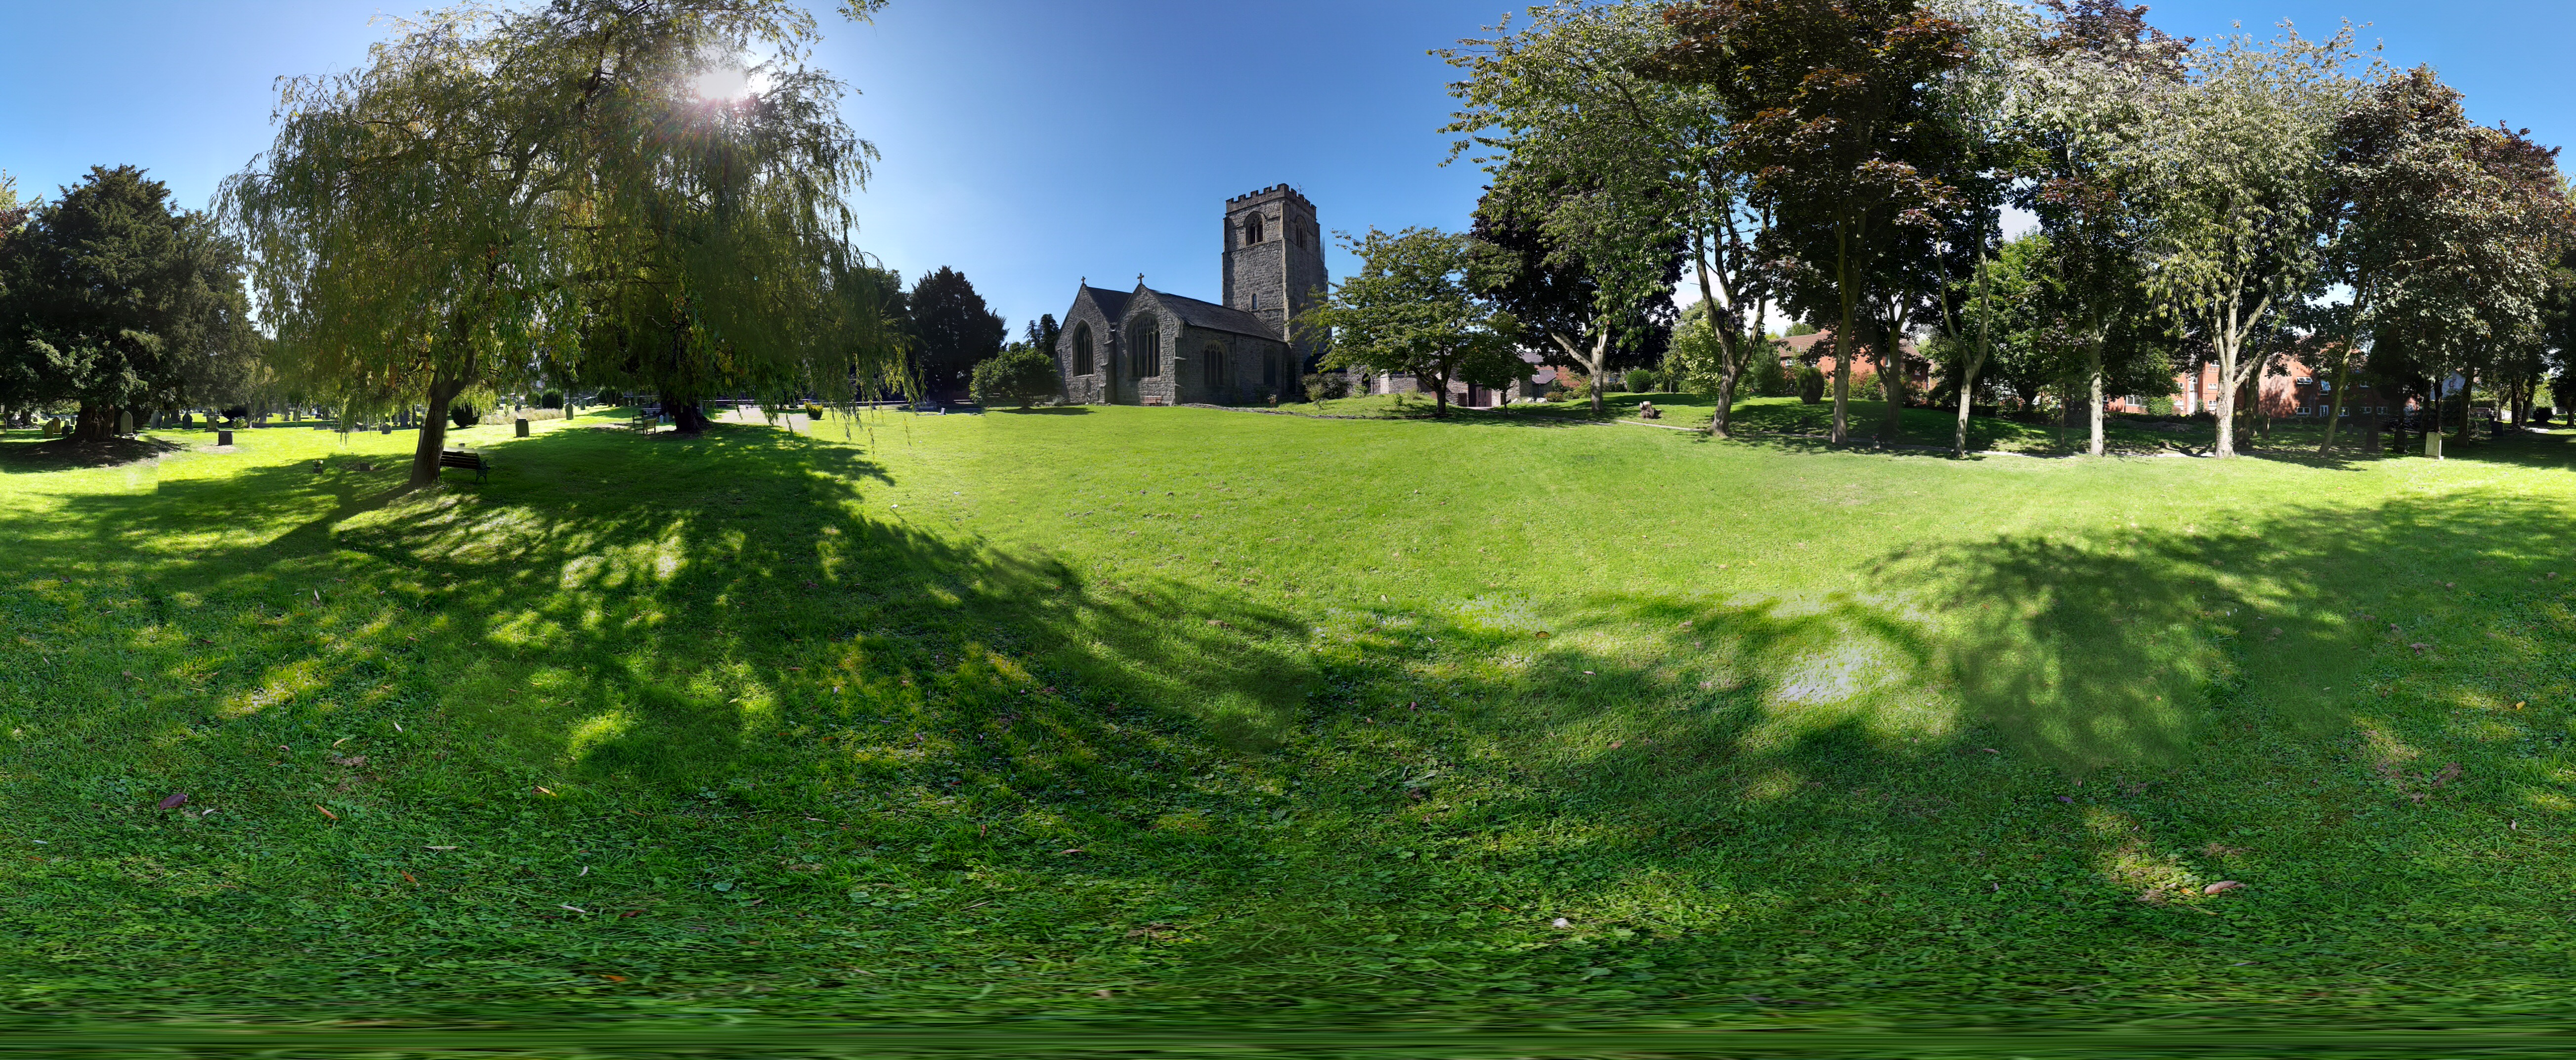 St Mary's Church, Chirk